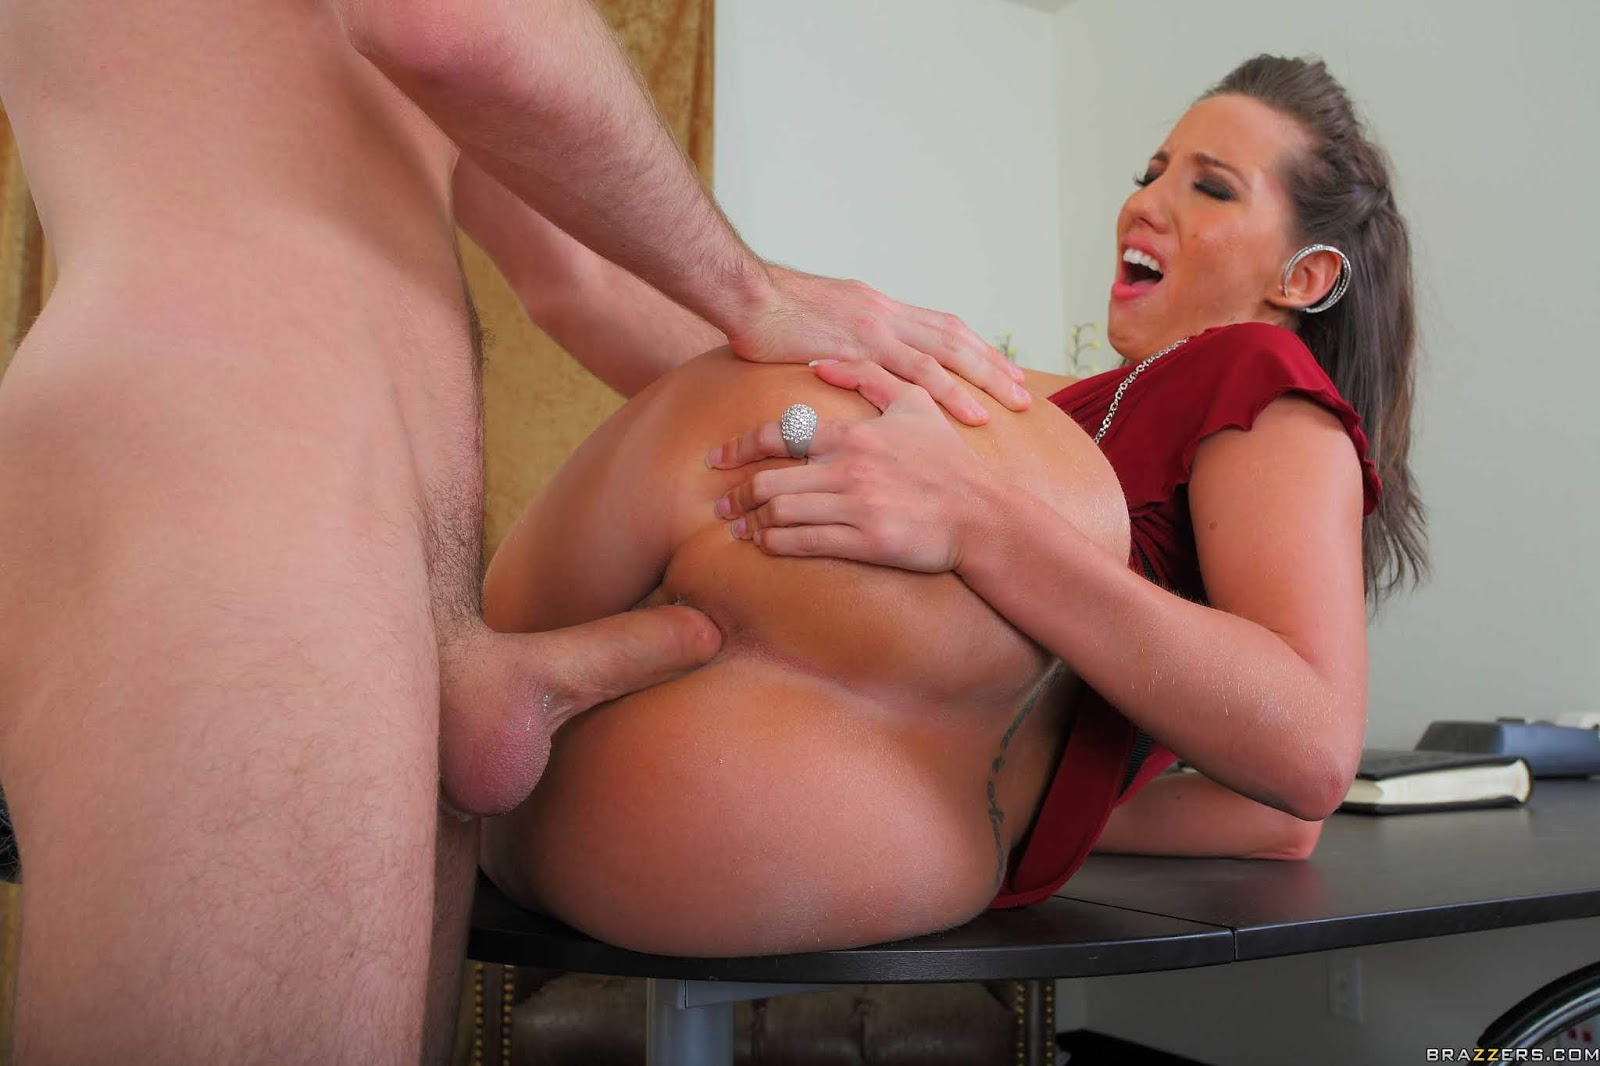 Busty mature milf punished her stepson for sneaking on her